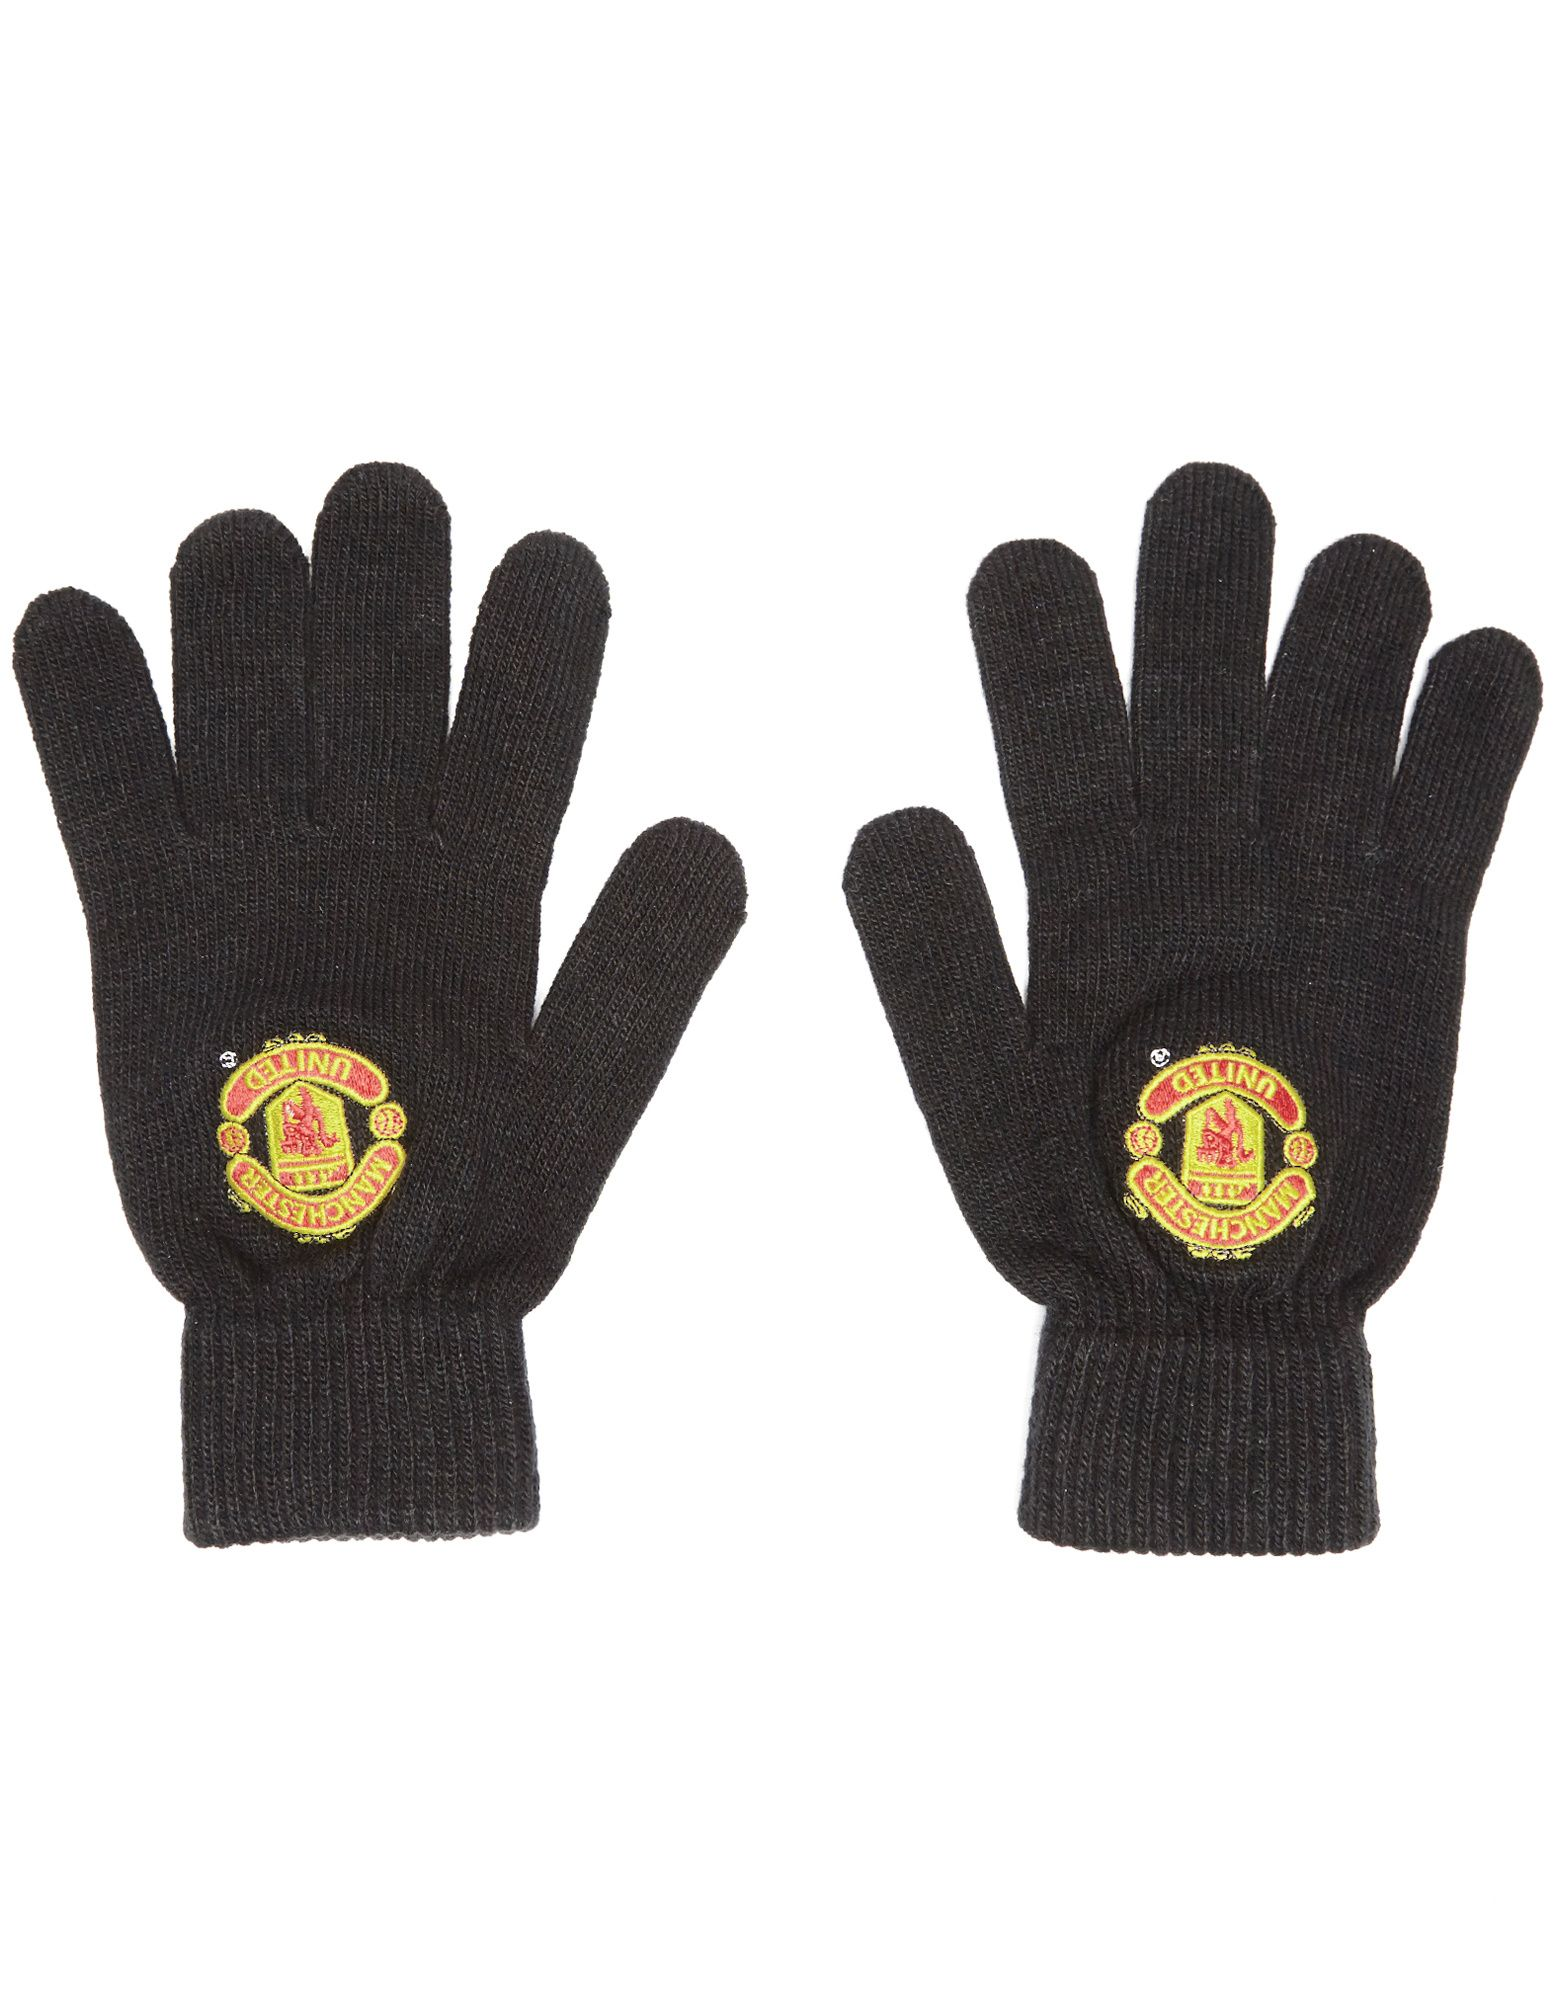 Official Team Manchester United FC Magic Gloves